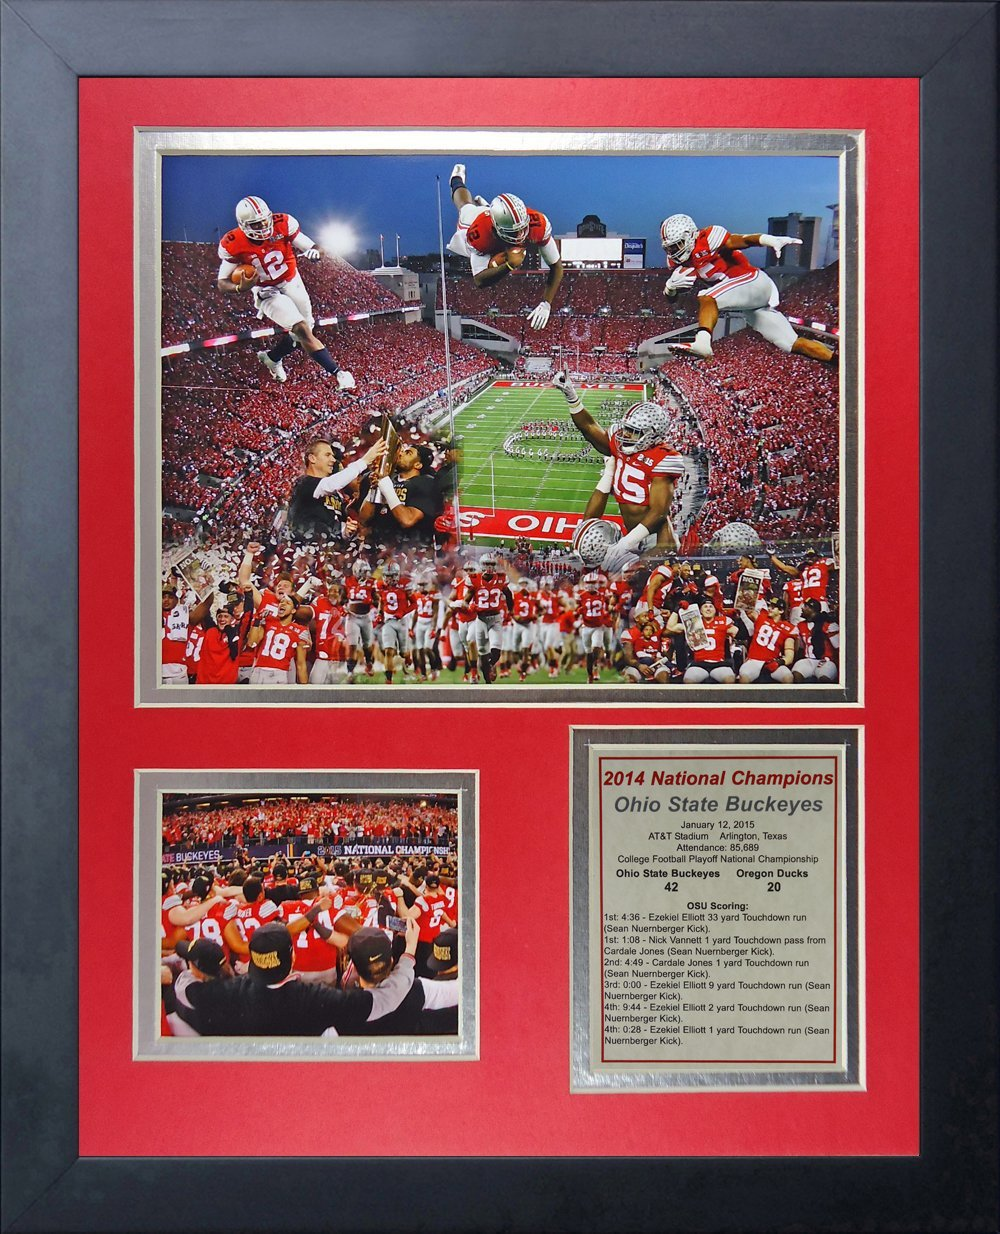 NCAA Ohio State Buckeyes Legends Never Die Framed Photo Collage (2014 CFP Football National Champions), Celebration 2, 11 x 14-Inch by Legends Never Die